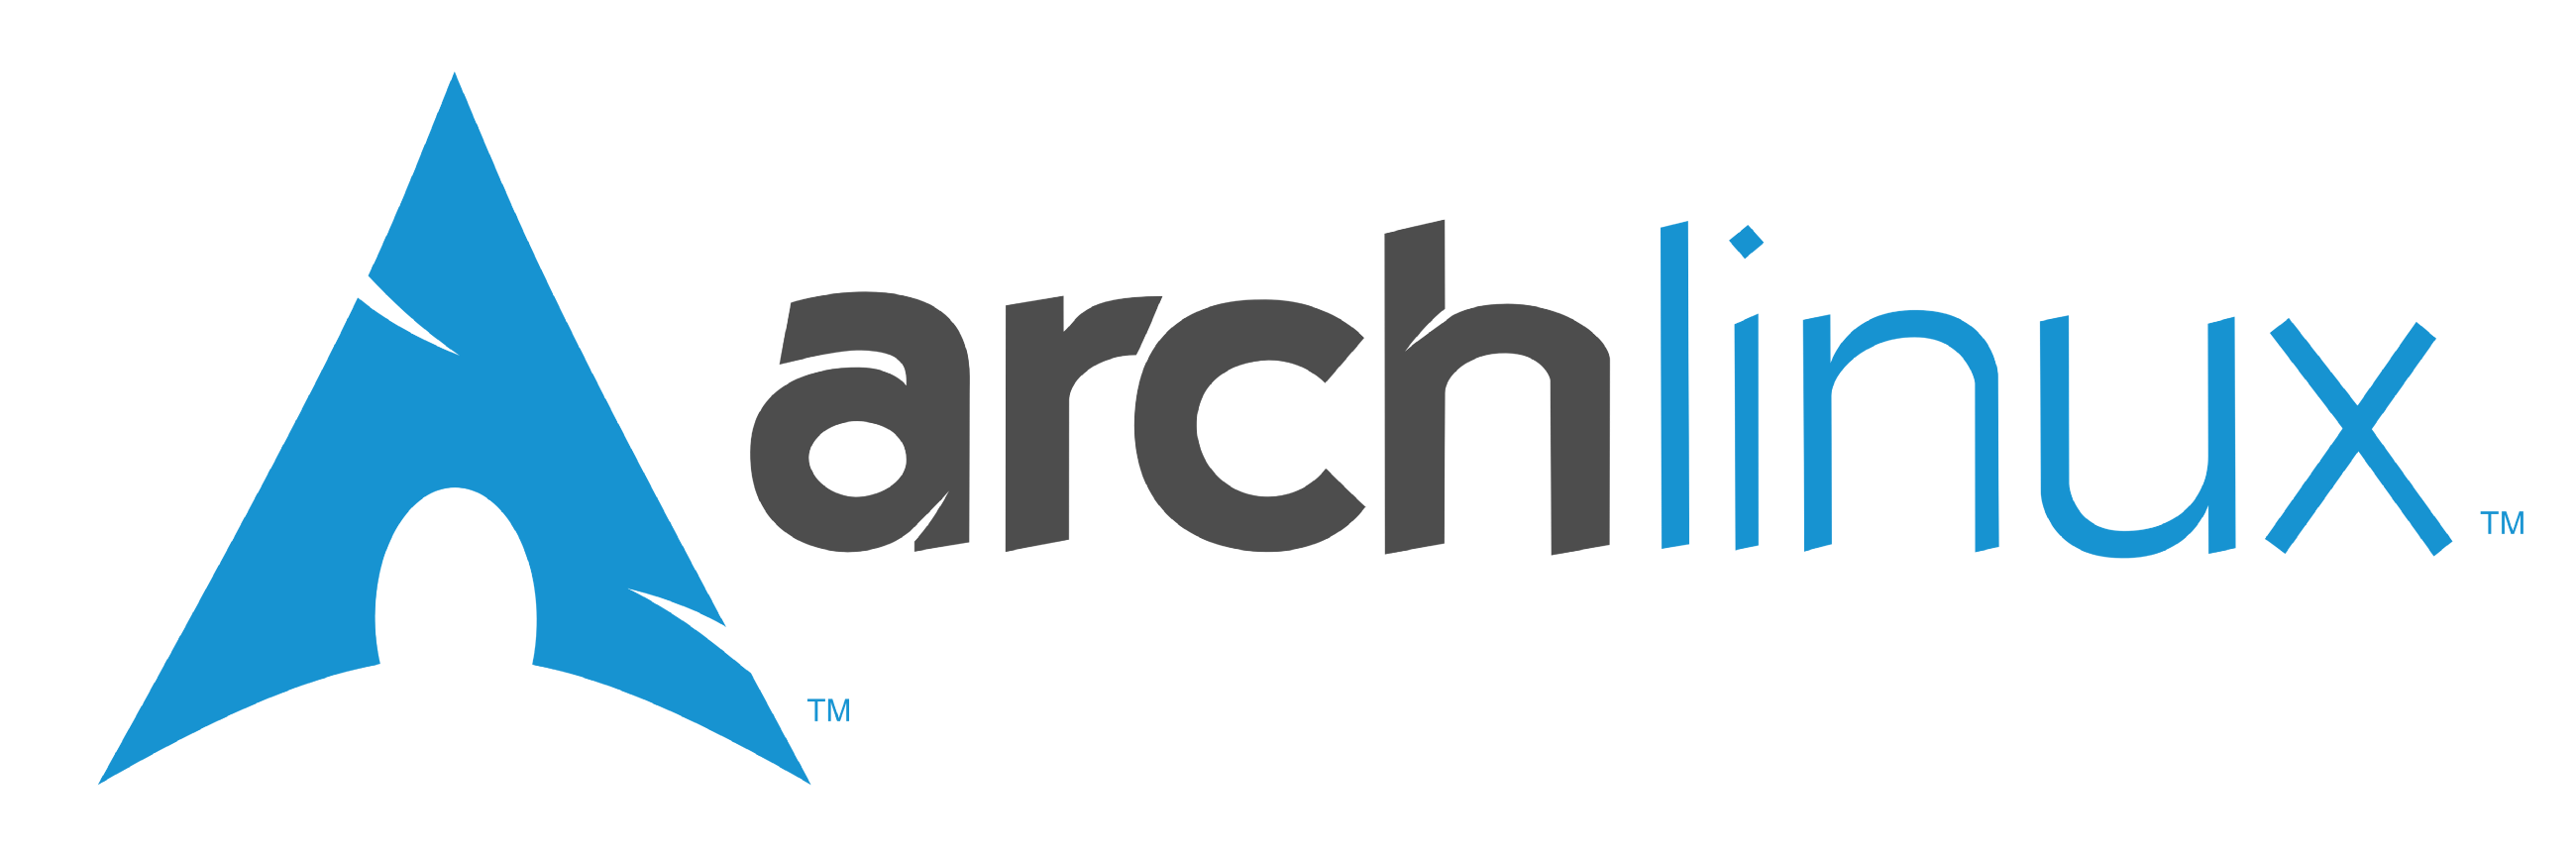 This is why Arch Linux should be considered when choosing a Linux distro